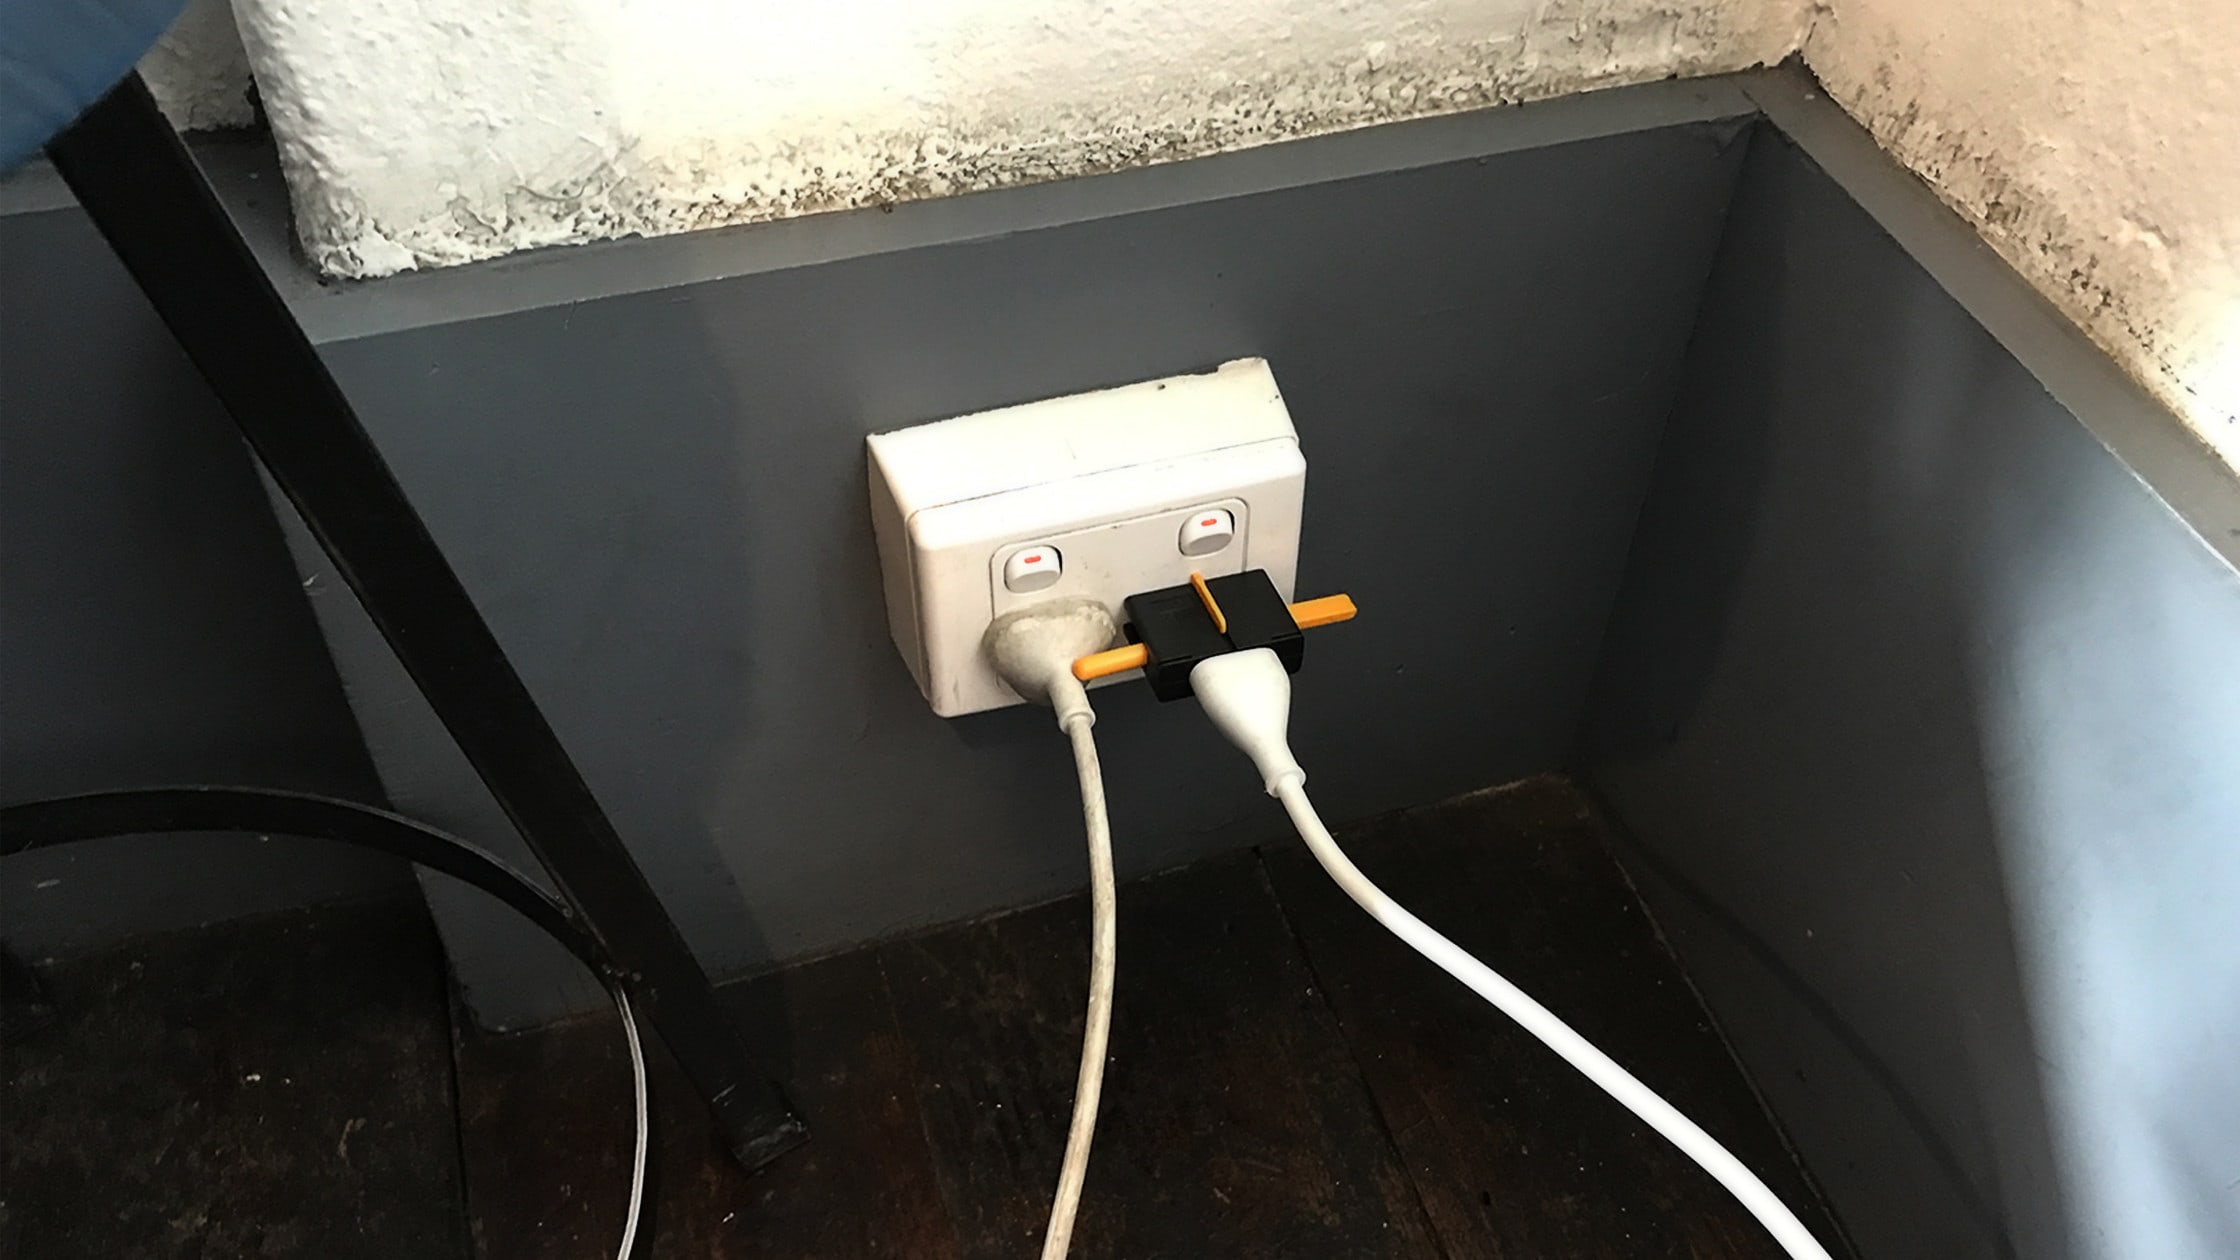 kikkerland travel adapter plug into the walll